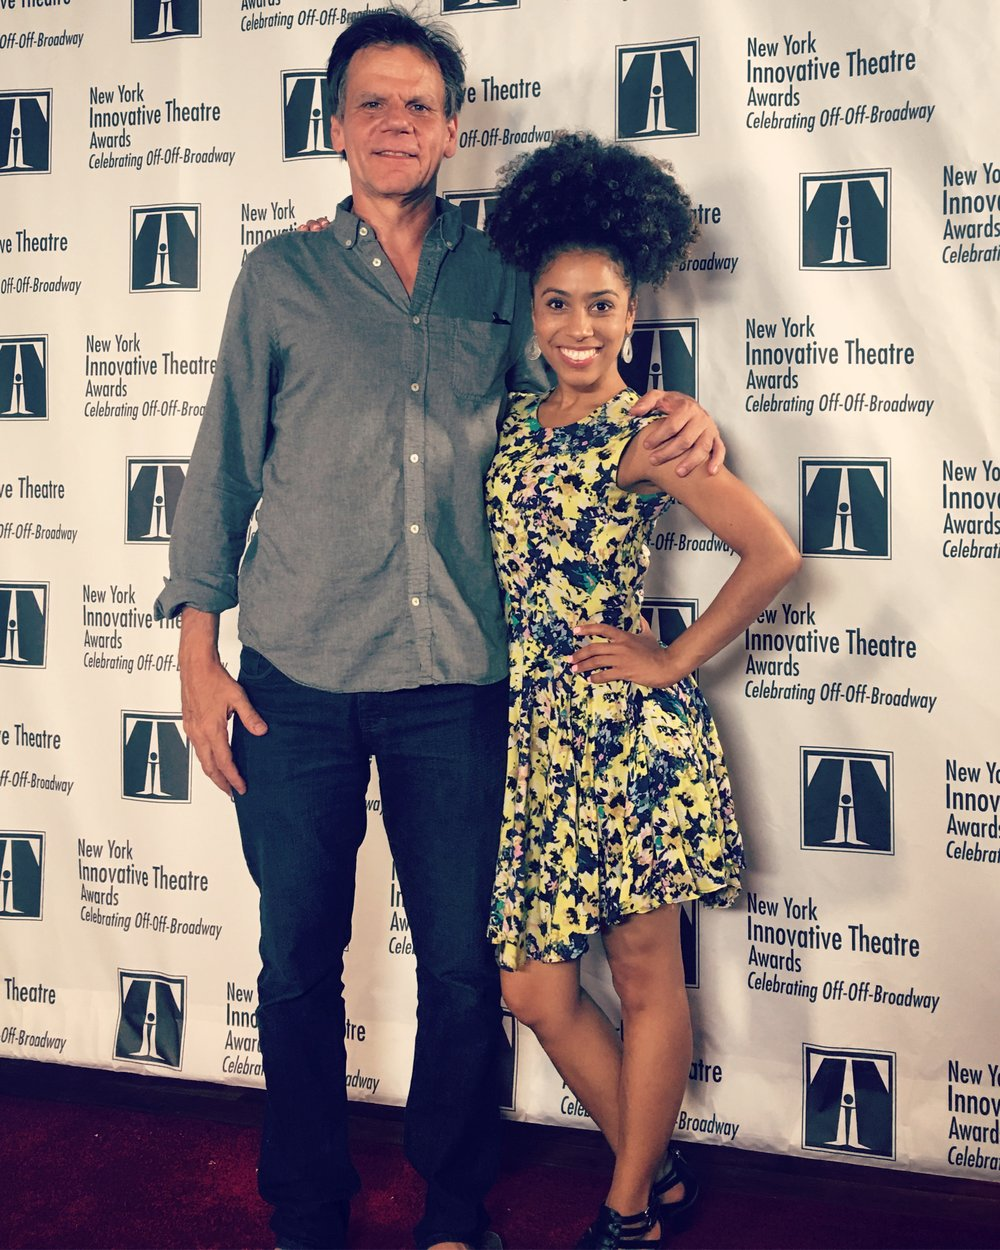 Halle with T. Schreiber Artistic Director Peter Jensen at the New York Innovation Theatre Awards